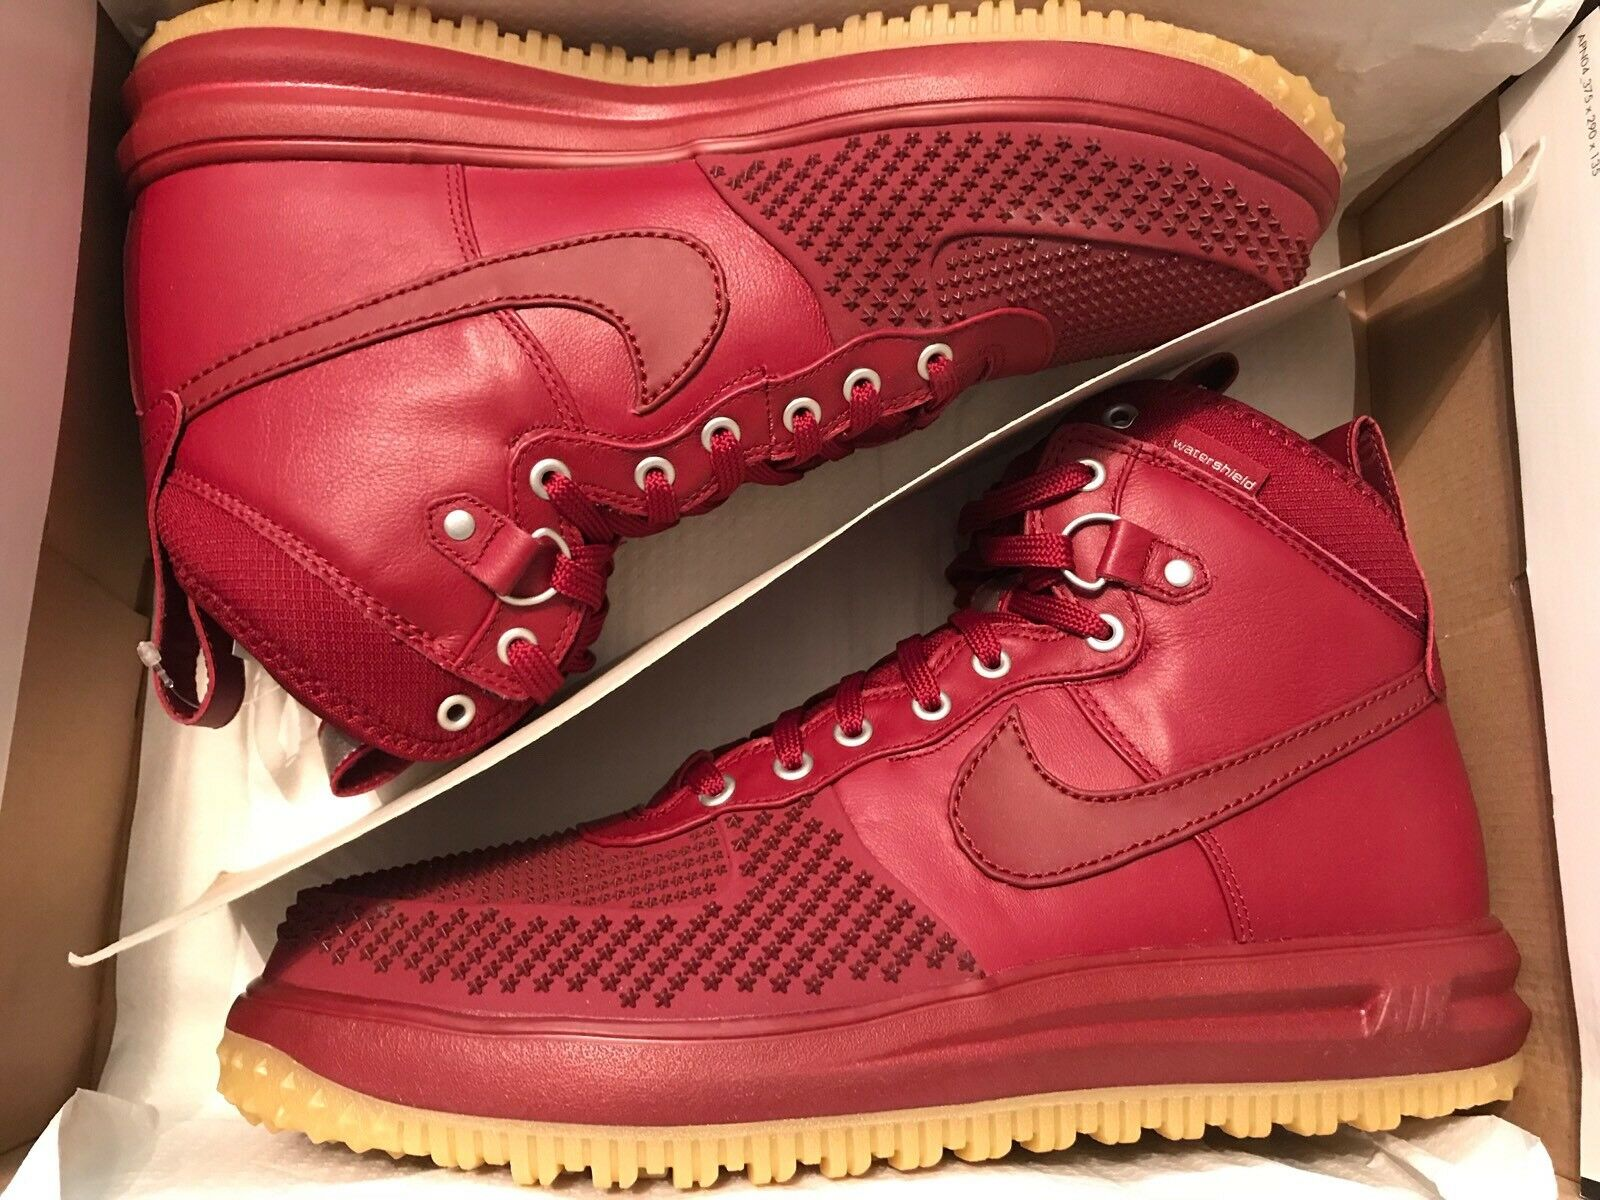 82a92e053324 Nike Lunar Force 1 Duckboot Team Red 805899-600 Mens Sizes 13 for ...